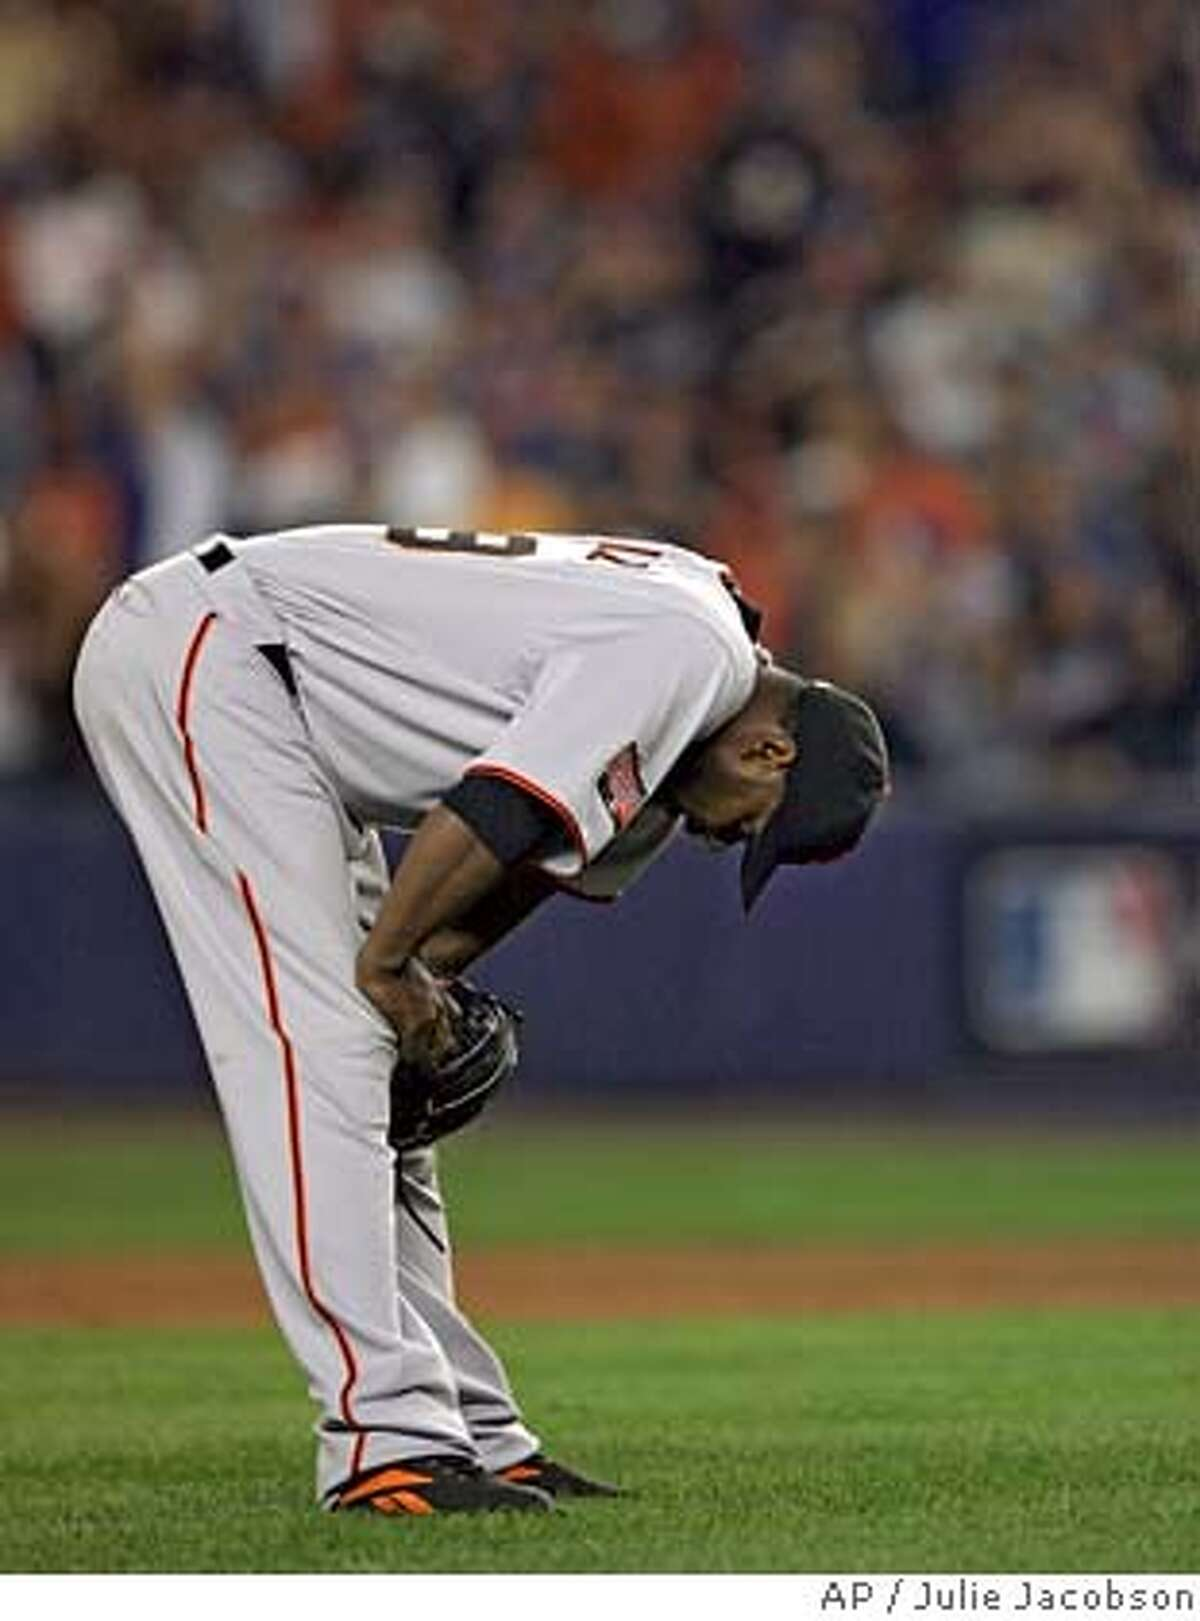 San Francisco Giants' Armando Benitez reacts after committing a balk with Jose Reyes on third base during the 12th inning in Major League Baseball action Tuesday, May 29, 2007 at Shea Stadium in New York. Reyes scored on the balk and Benitez then gave up a home run to Carlos Delgado for the winning run. The Mets won 5-4. (AP Photo/Julie Jacobson)